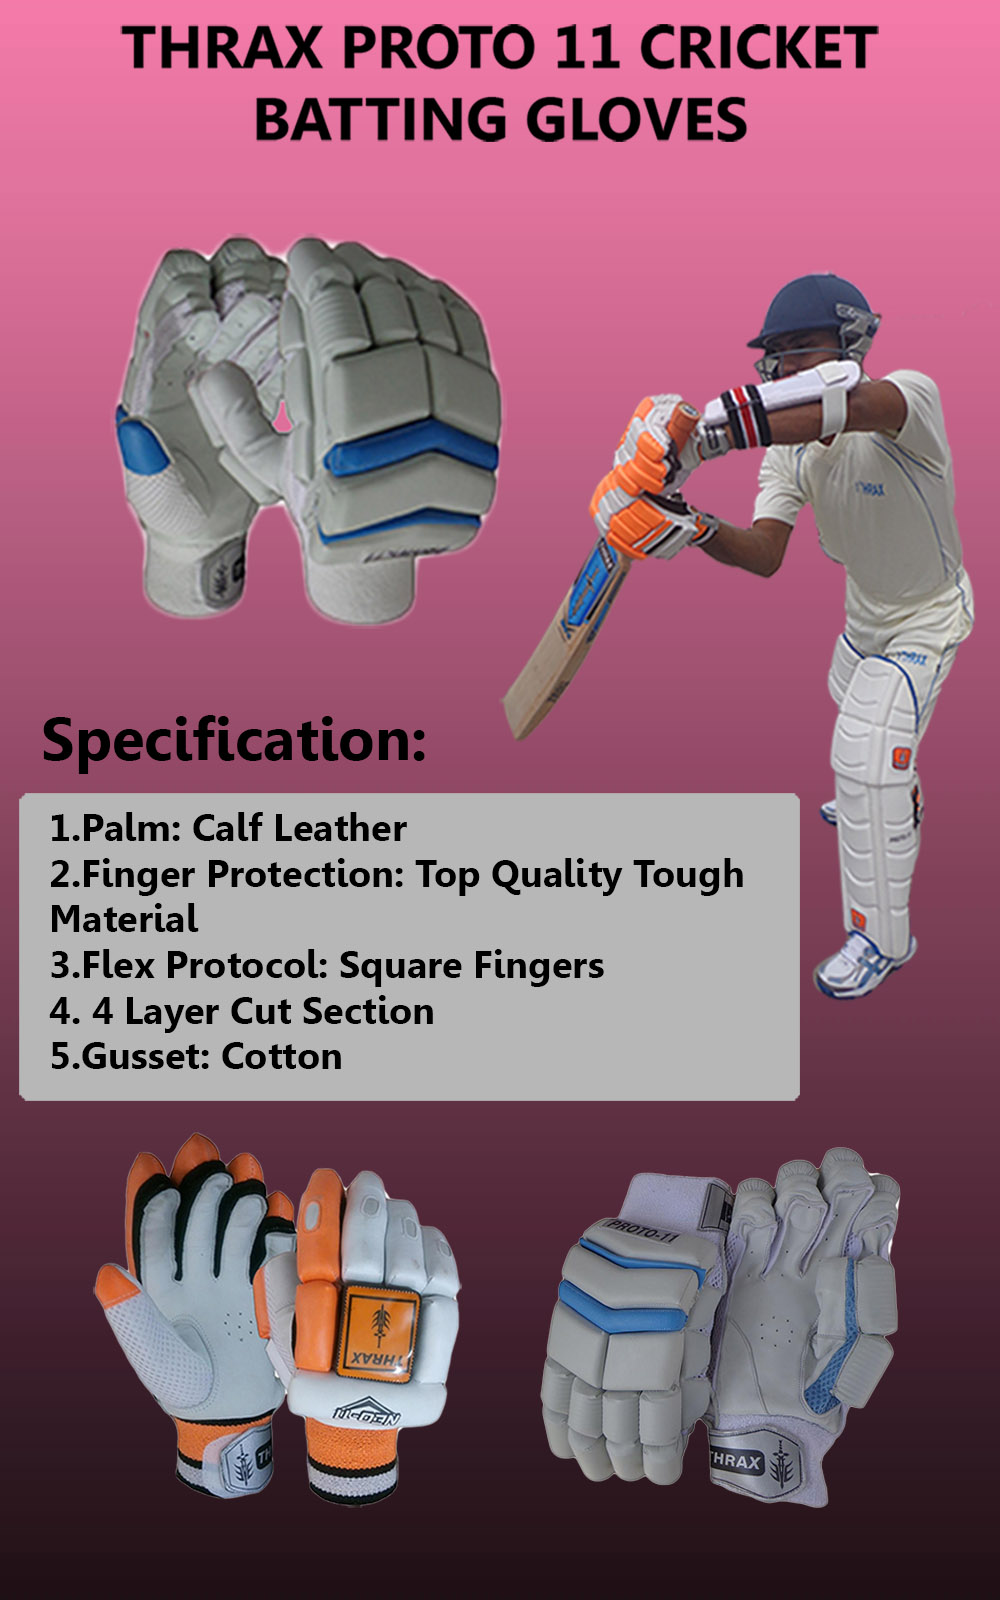 Thrax Proto 11 Cricket Batting gloves